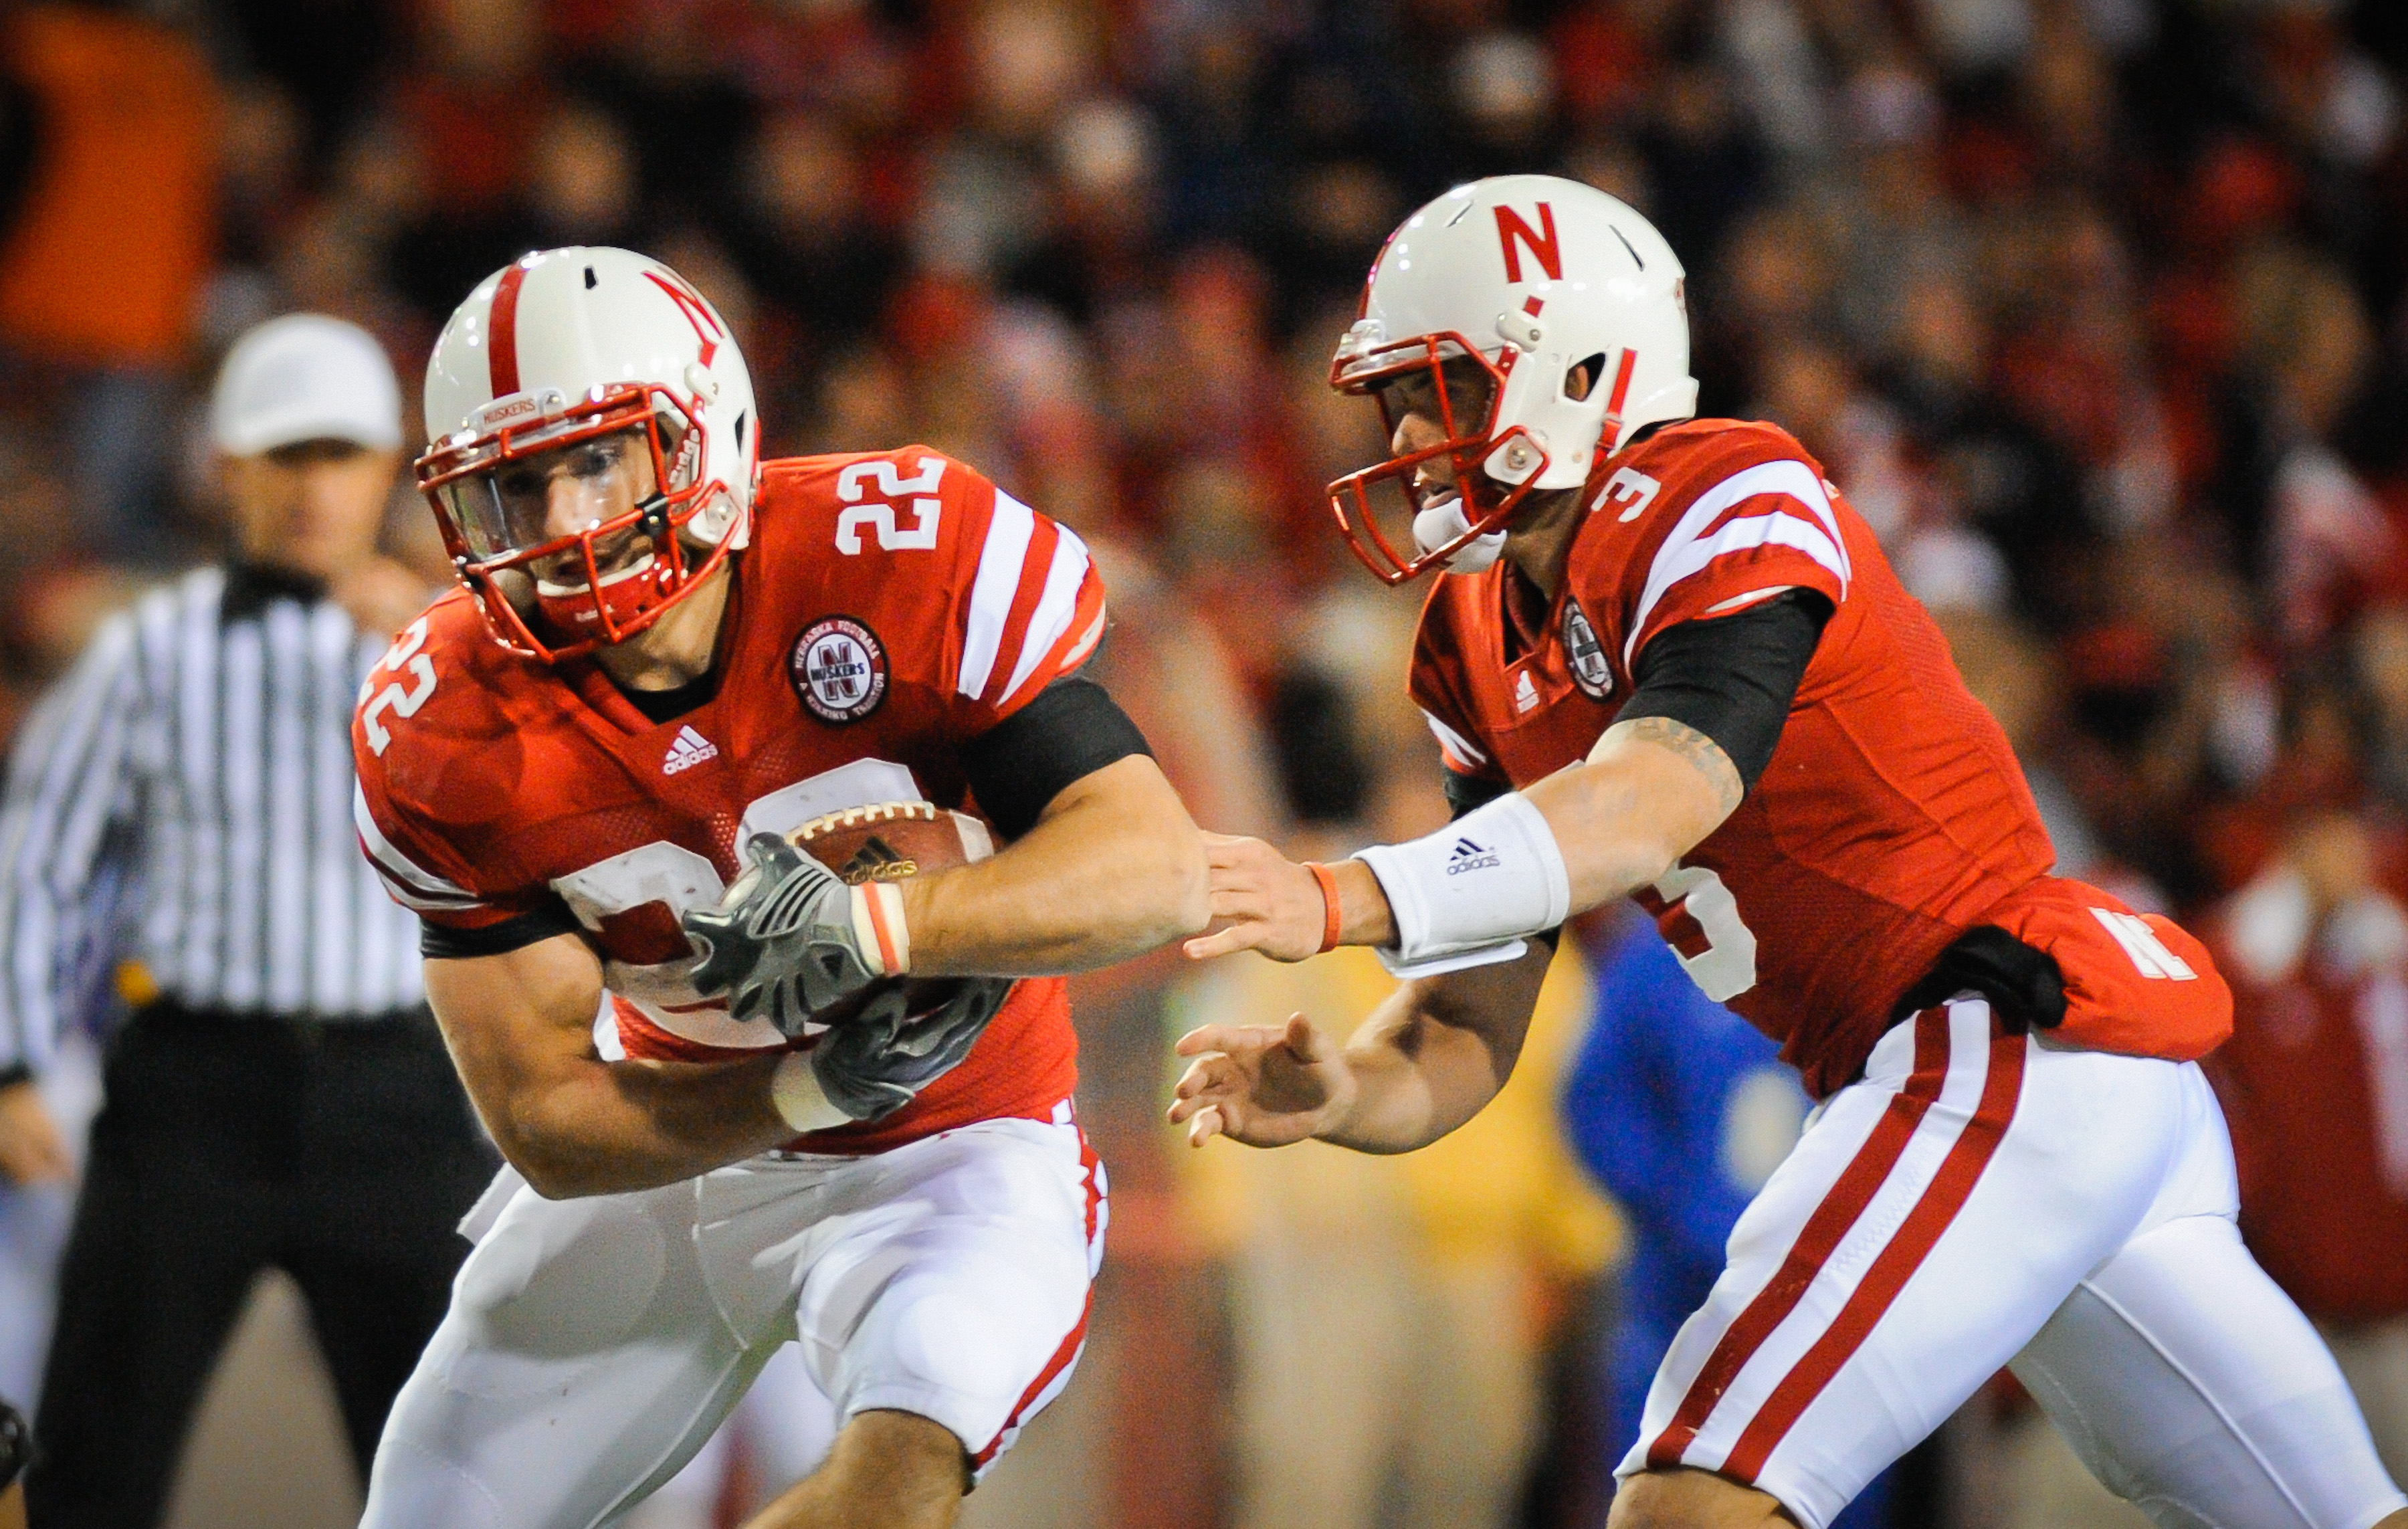 LINCOLN, NE - NOVEMBER 13: Taylor Martinez #3 of the Nebraska Cornhuskers hands the ball to Rex Burkhead #22 during second half action of their game at Memorial Stadium on November 13, 2010 in Lincoln, Nebraska. Nebraska Defeated Kansas 20-3. (Photo by Er